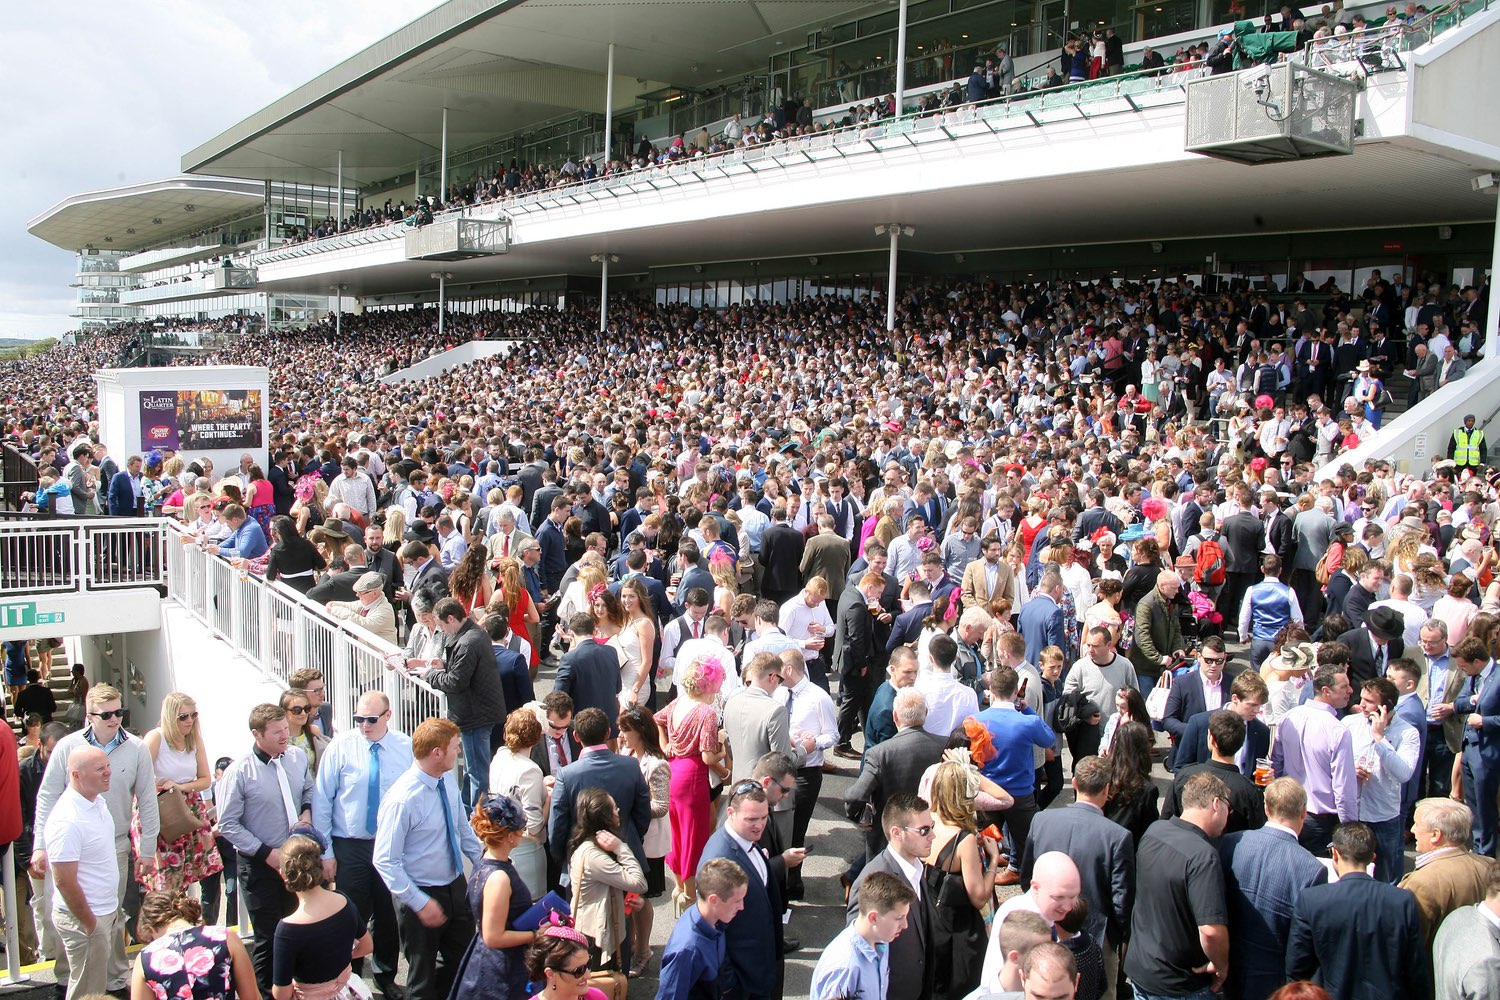 Crowd in the stands at the Galway Races 2015.